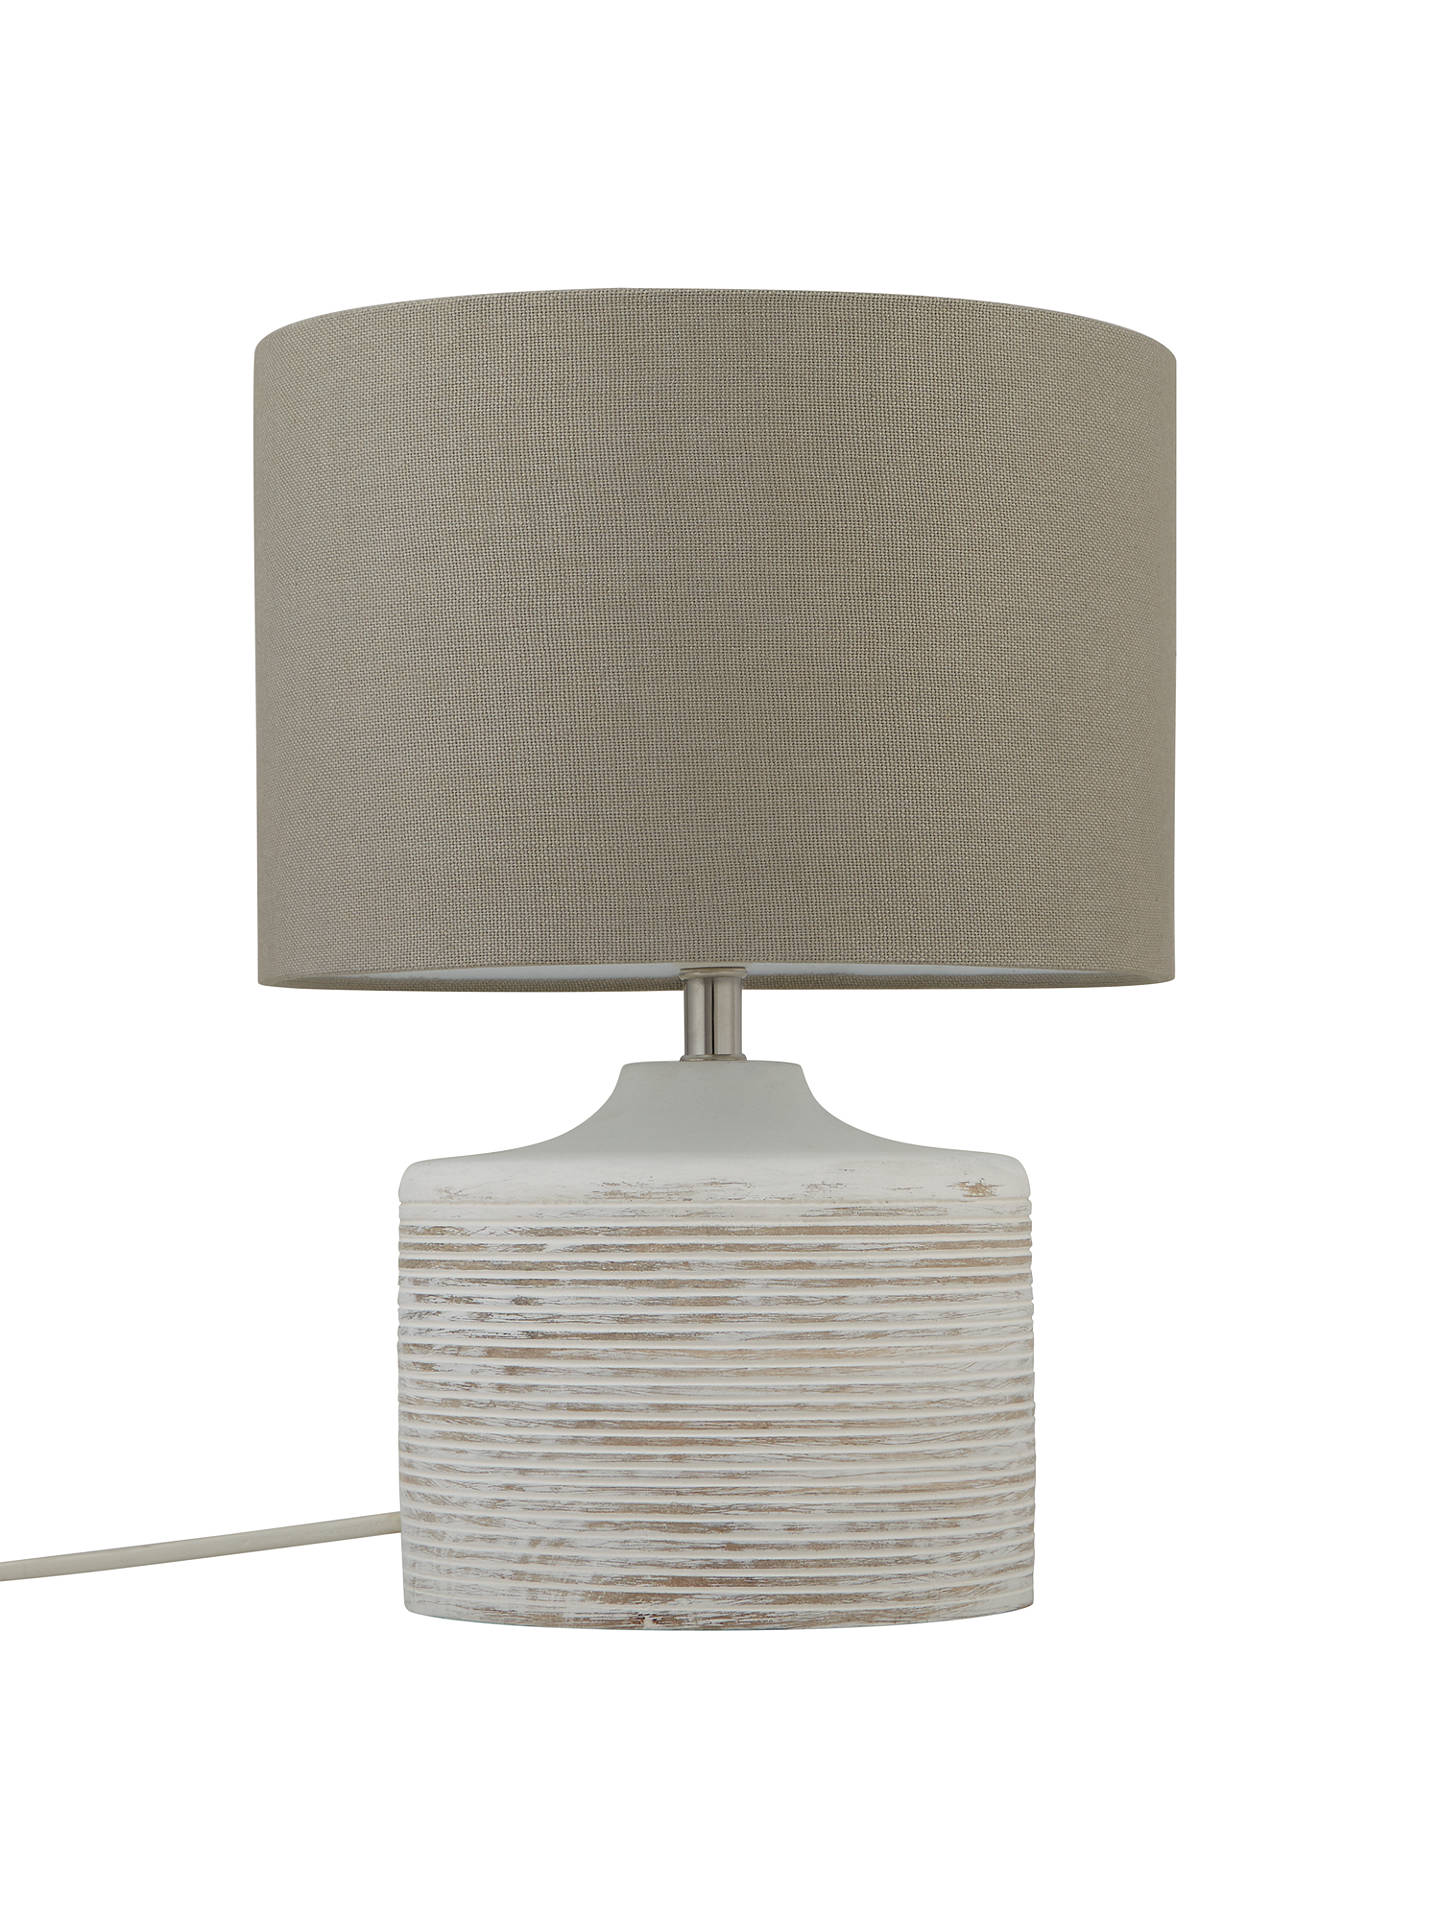 John Lewis Ira Ribbed Wooden Table Lamp White Wash Online At Johnlewis